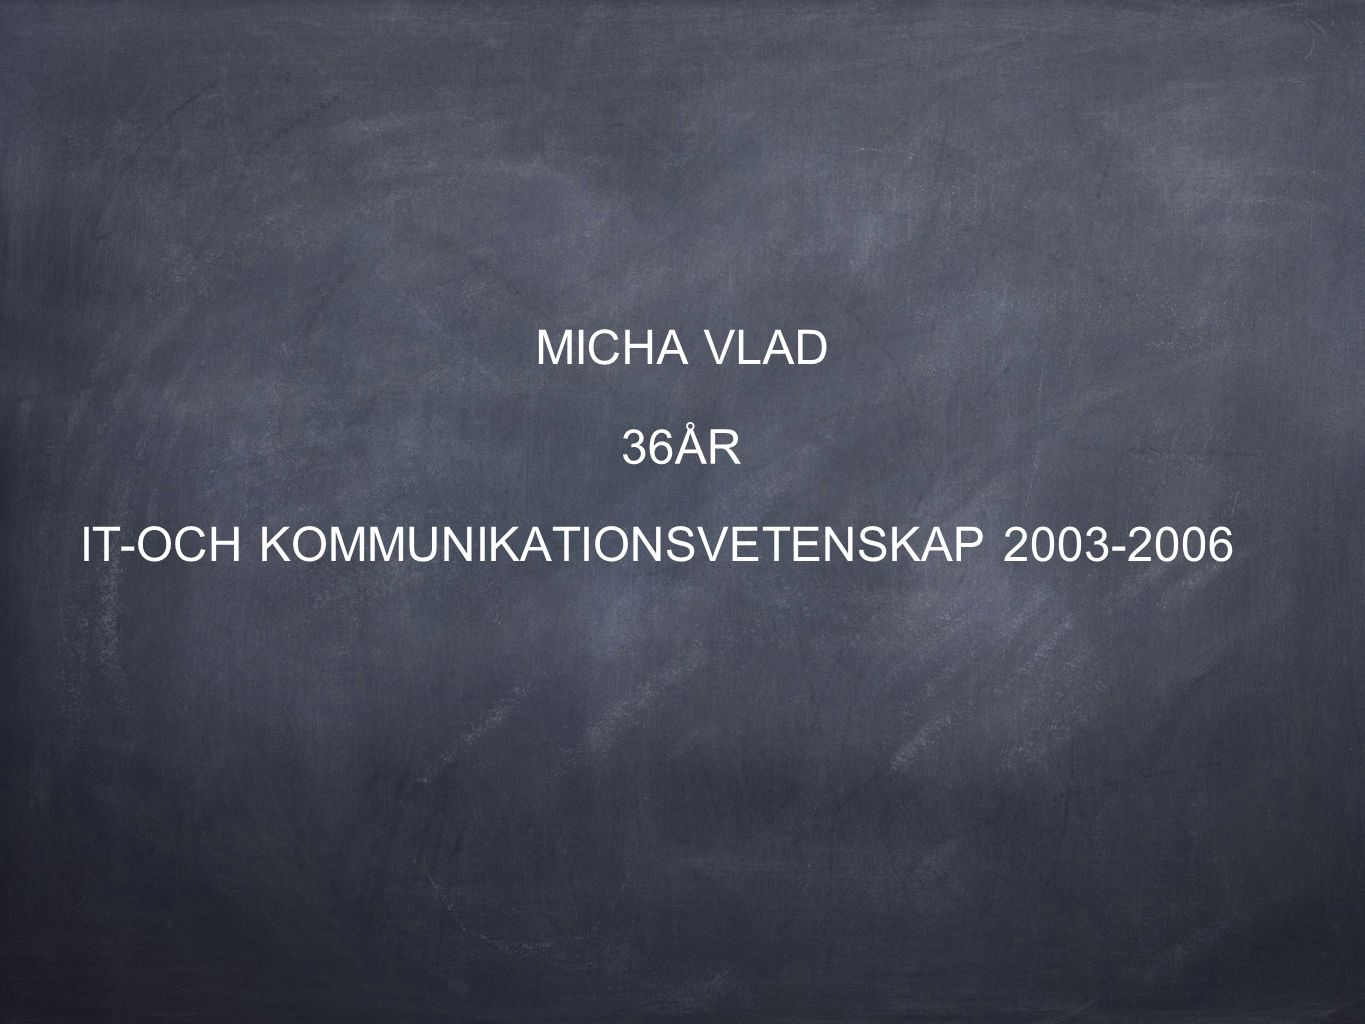 MICHA VLAD 36ÅR IT-OCH KOMMUNIKATIONSVETENSKAP 2003-2006